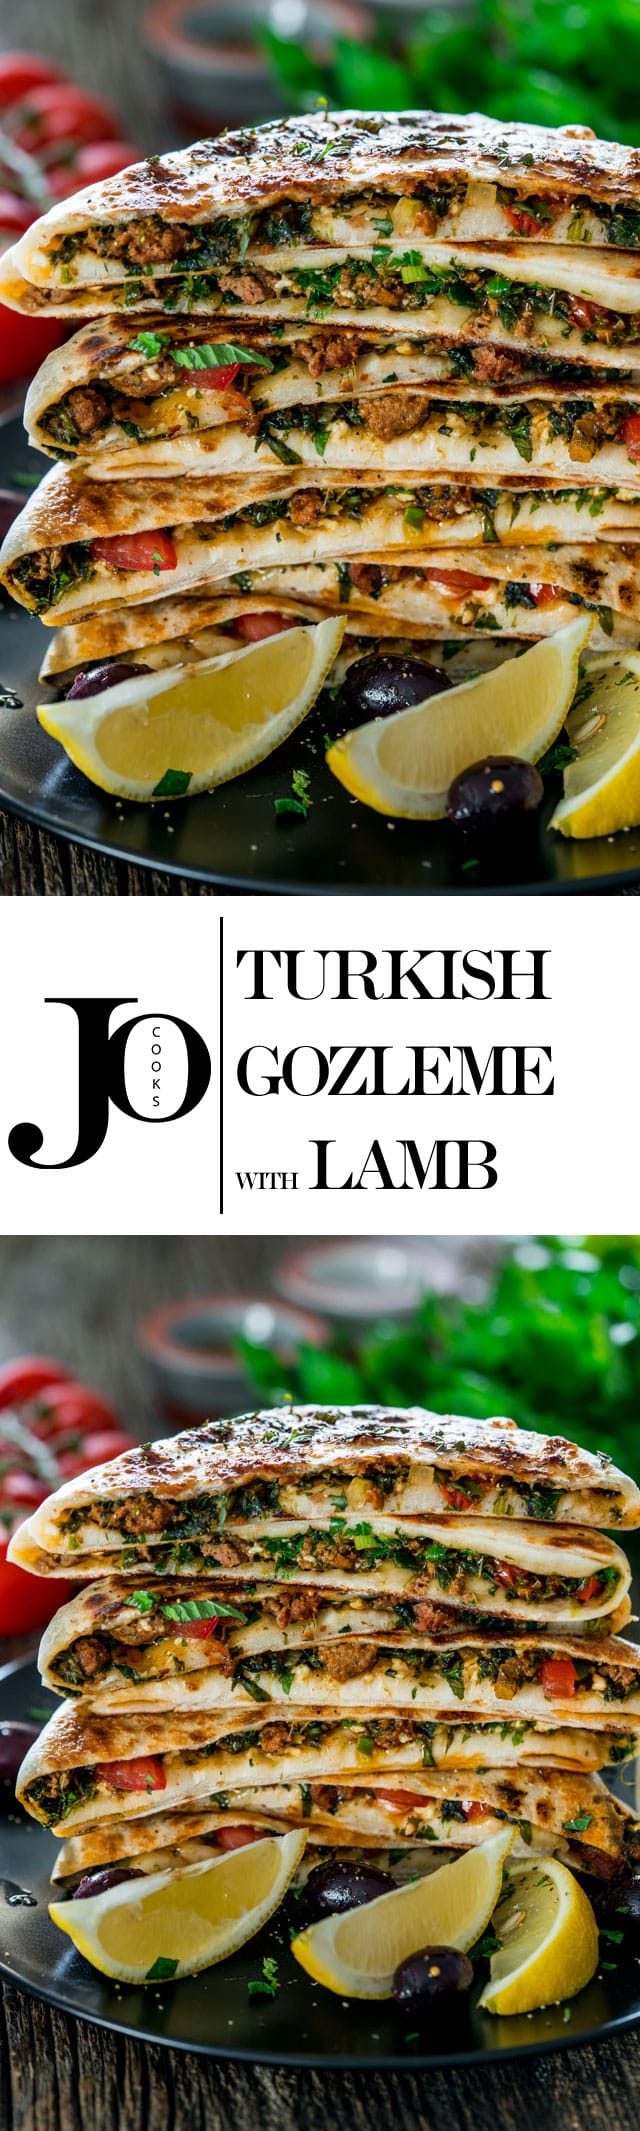 Turkish Gozleme with Lamb - savoury homemade flatbreads from scratch filled with ground lamb, spices, herbs and feta cheese. You won't be able to eat just one! www.jocooks.com #gozleme